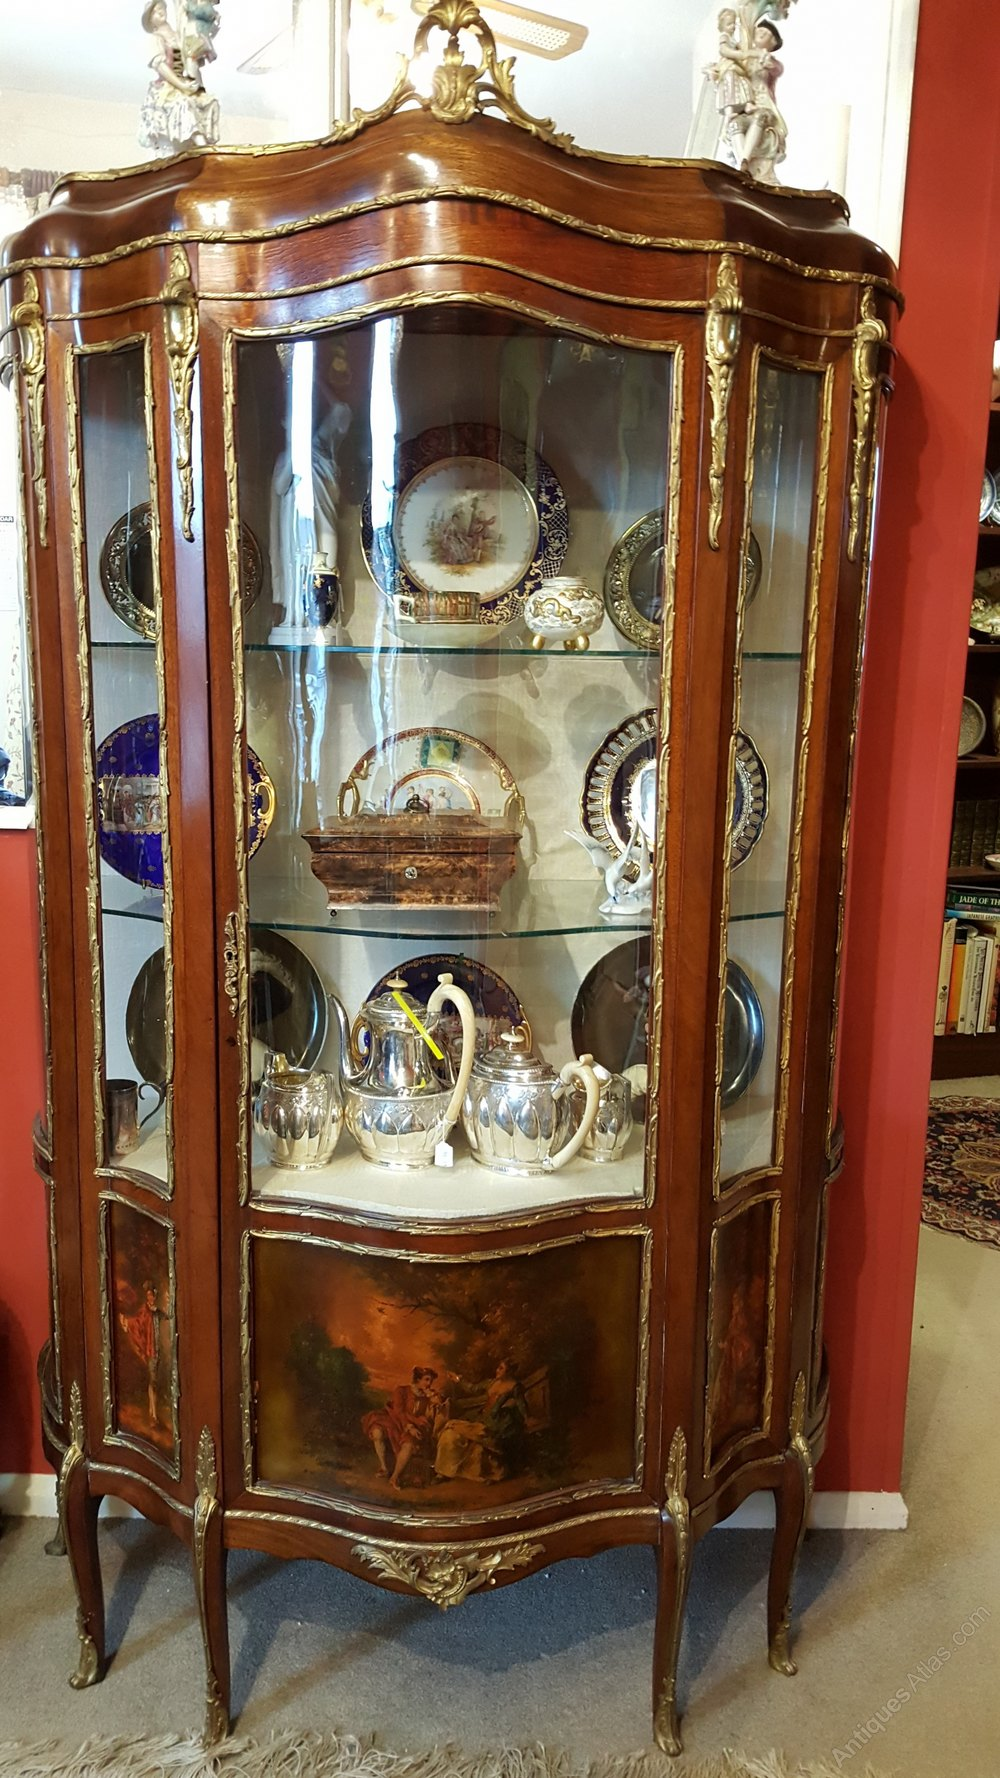 19th century French Vernis Martin Cabinet Antique Display Cabinets ... - 19th Century French Vernis Martin Cabinet - Antiques Atlas